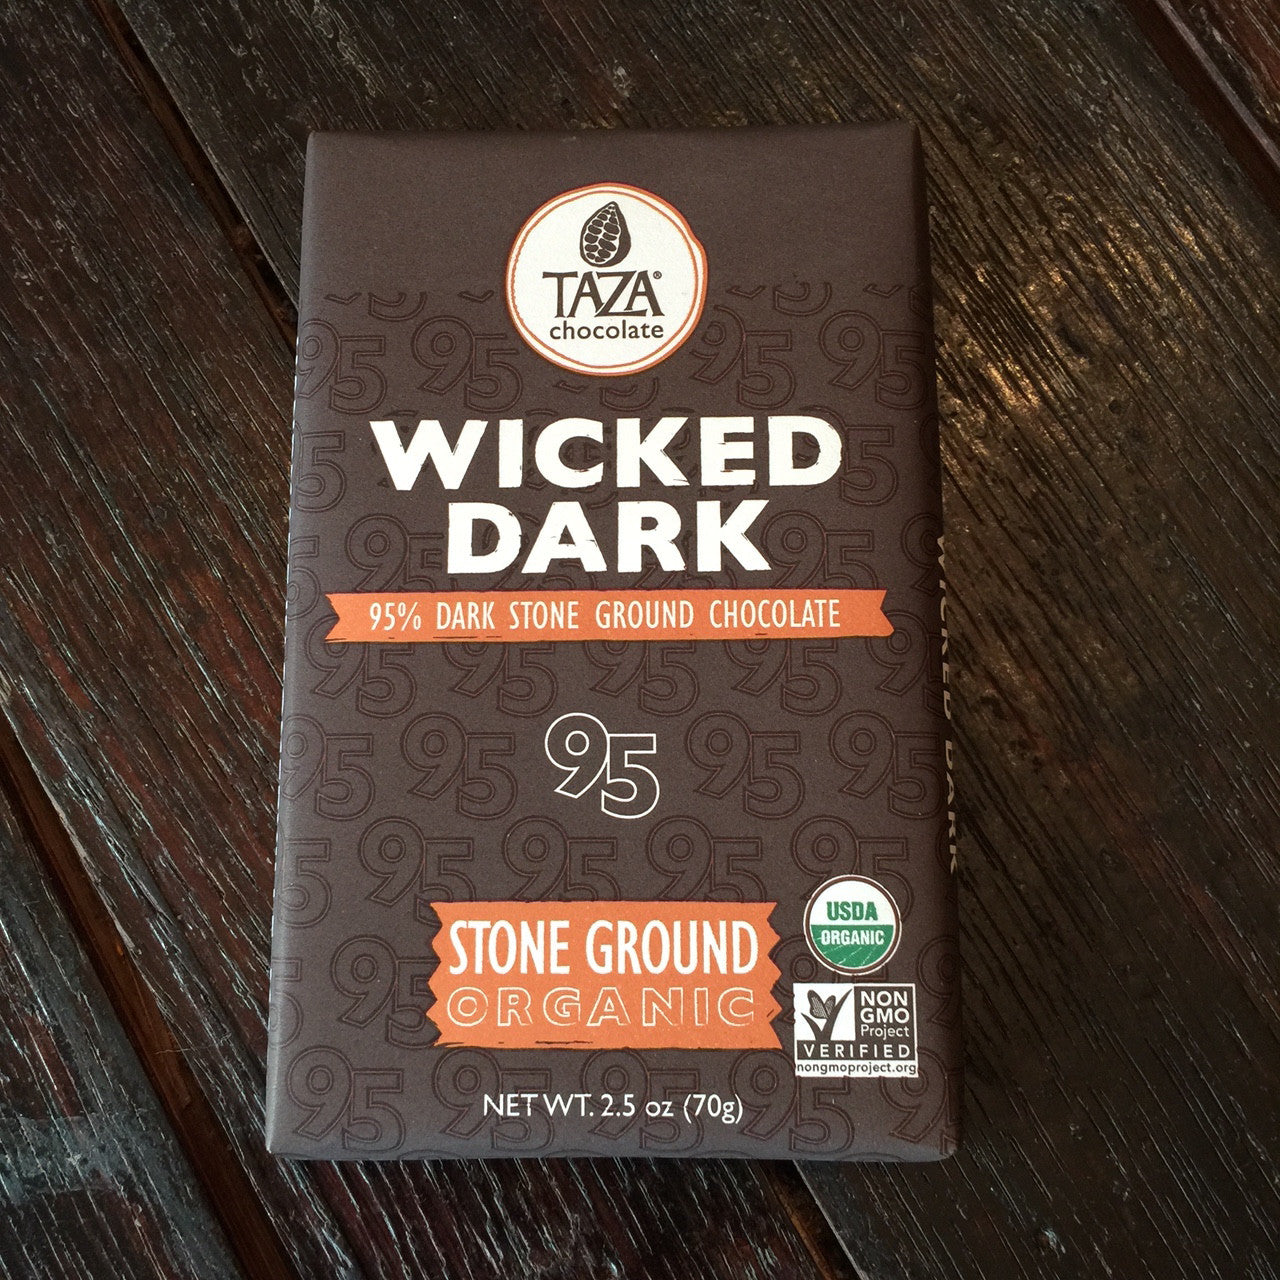 Taza Wicked Dark Amaze Bar